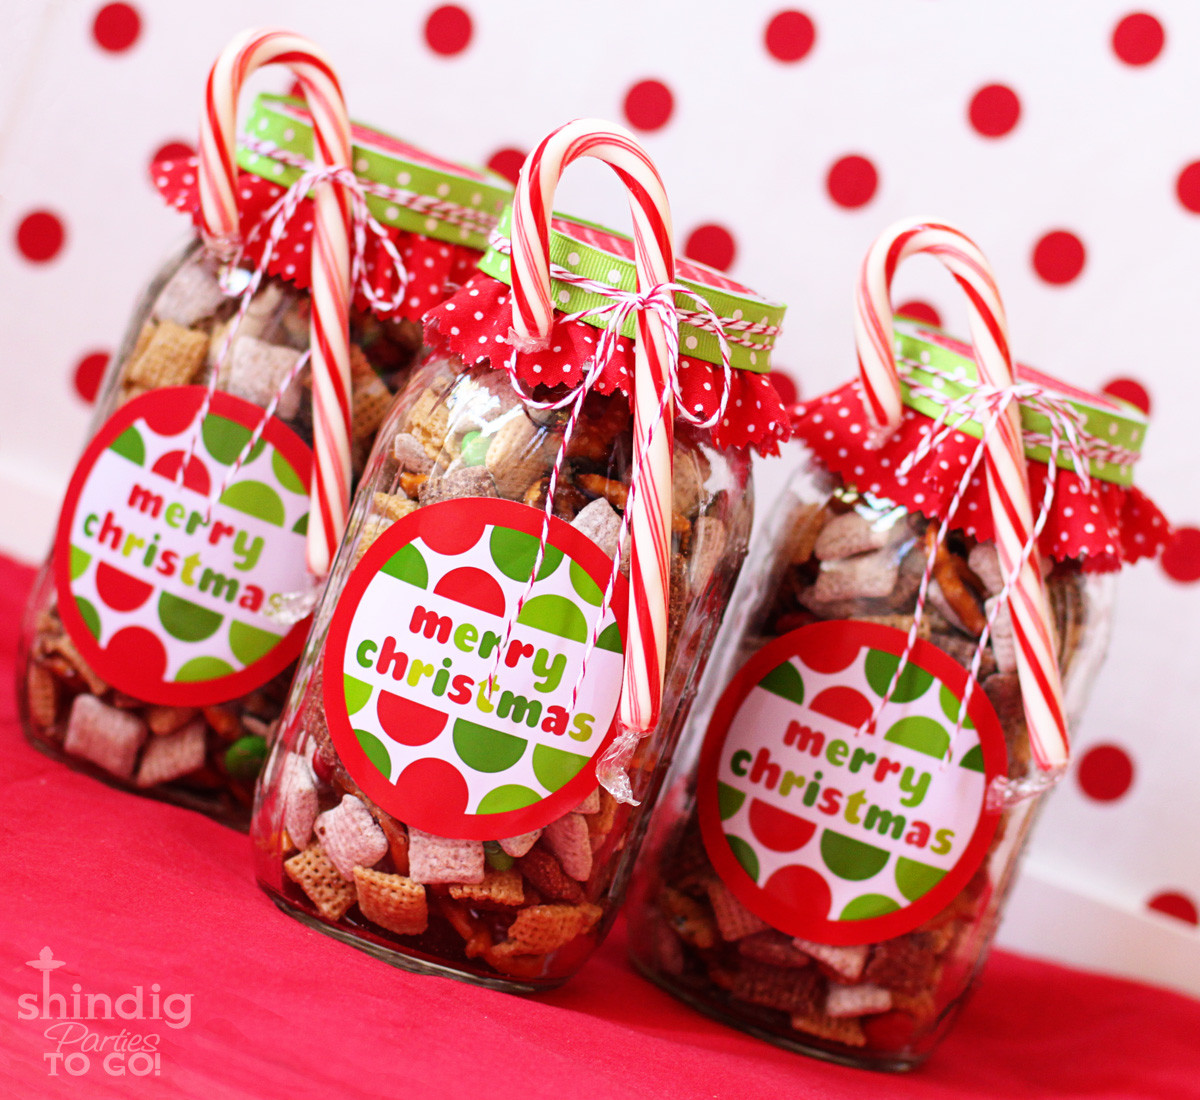 Homemade Christmas Candy Gift Ideas  How To Make Handmade Chex Mix Holiday Gifts & Bonus Free